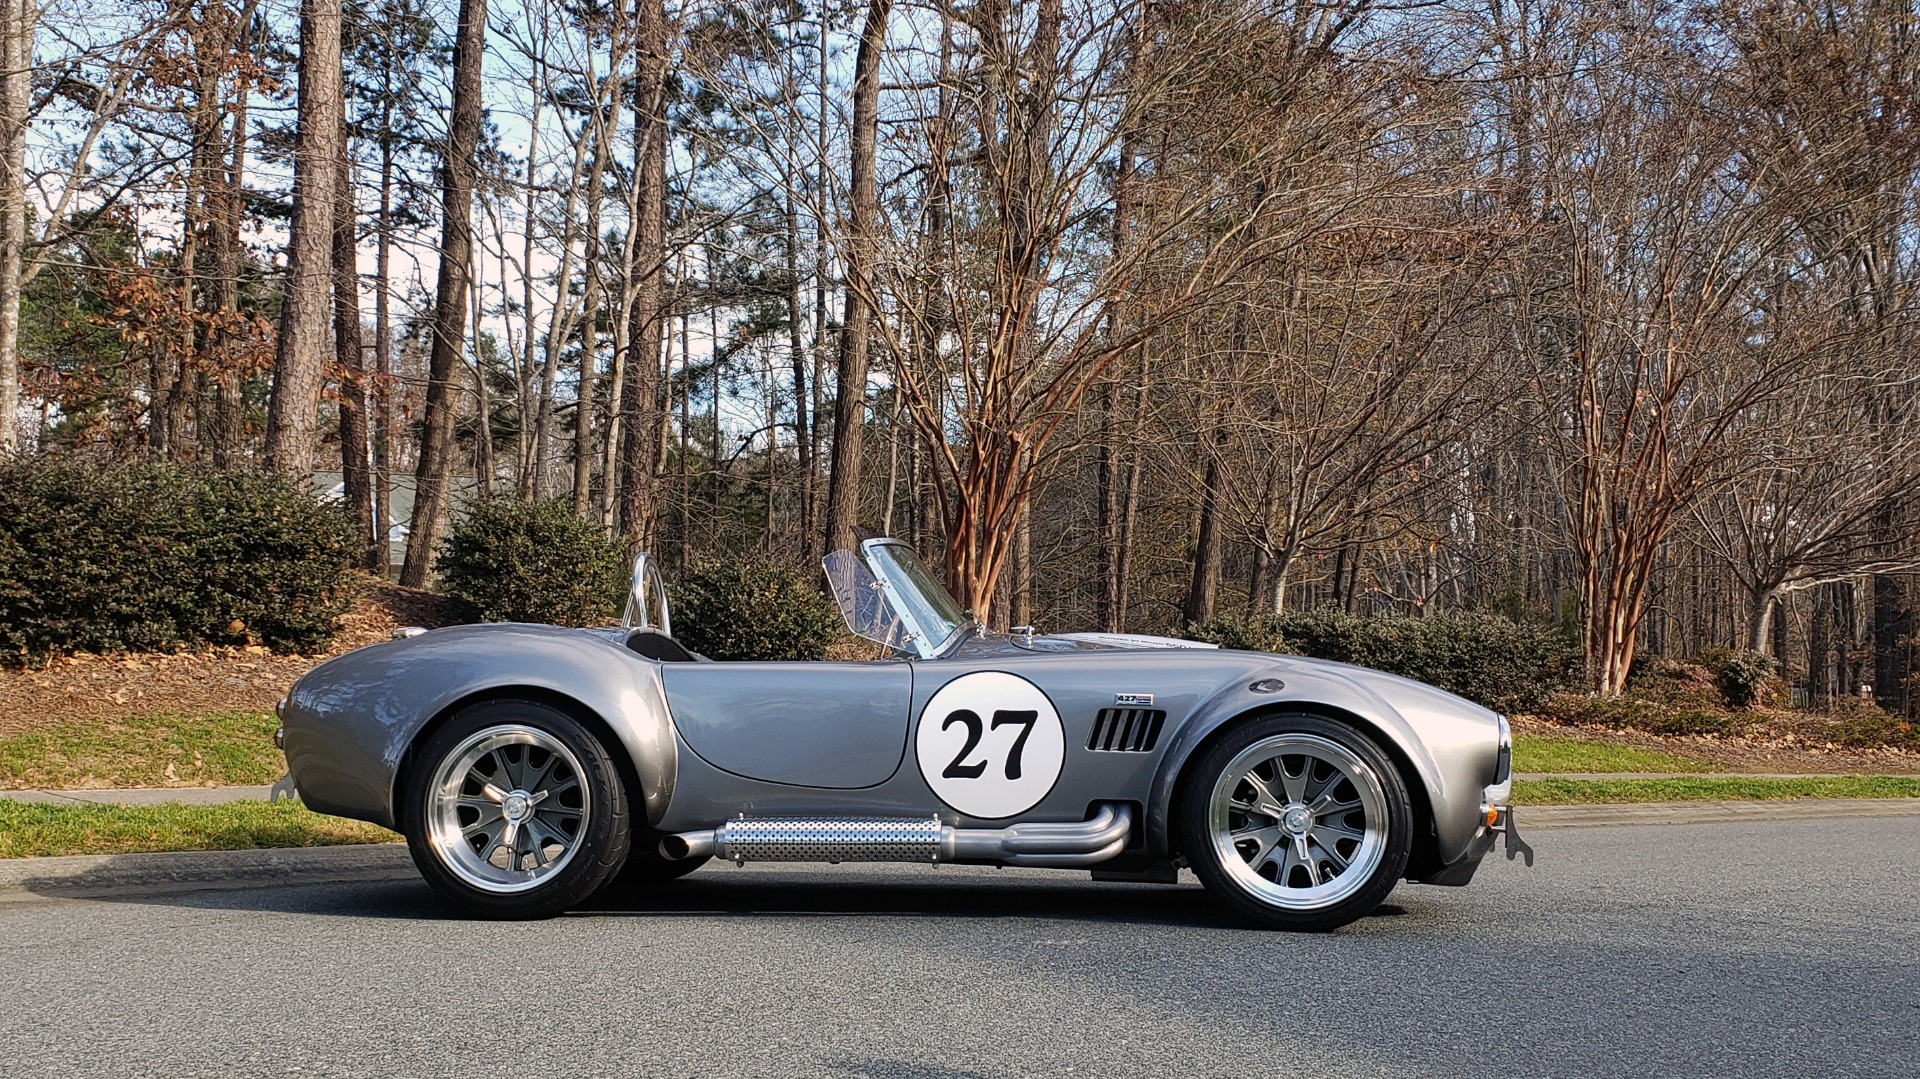 Used 1965 Ford COBRA 427 ROADSTER BY BRACKDRAFT RACING ROUSH 553HP V8 / TREMEC 6-SPD / PWR STRNG for sale $74,999 at Formula Imports in Charlotte NC 28227 5